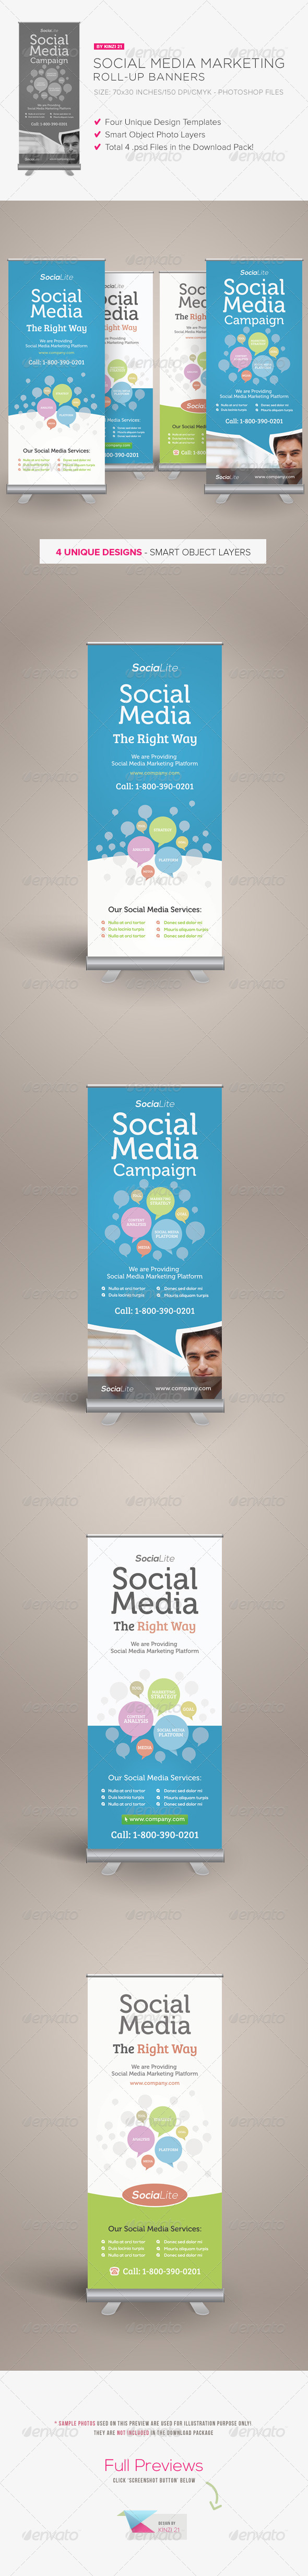 Social Media Marketing Roll-up Banners - Signage Print Templates